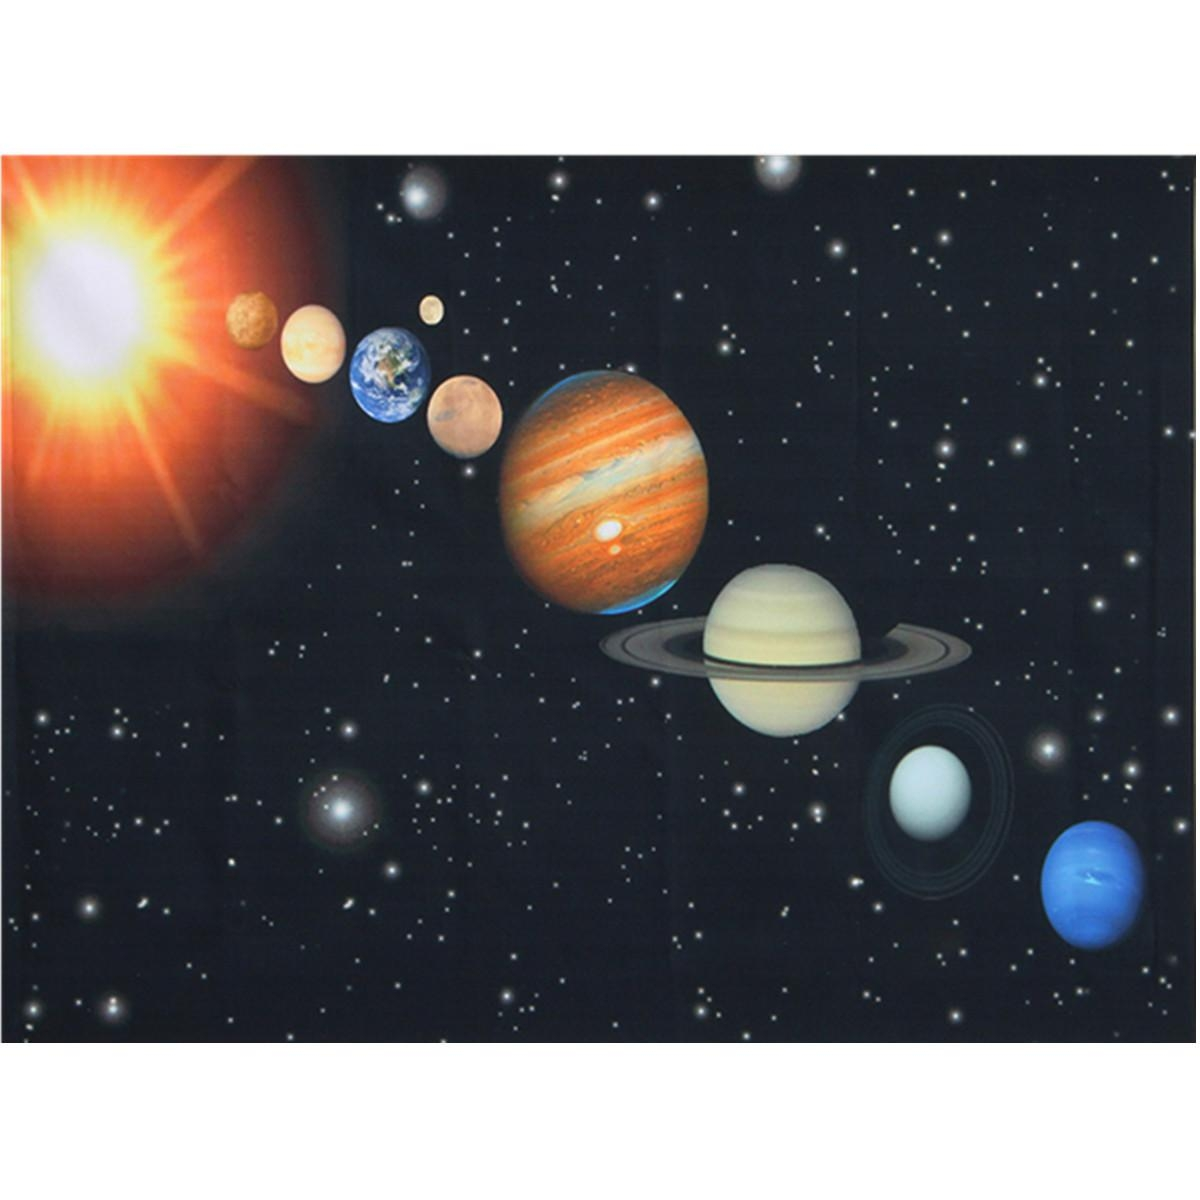 Online Get Cheap Pictures Solar System Aliexpress | Alibaba Group For Solar System Wall Art (View 9 of 20)